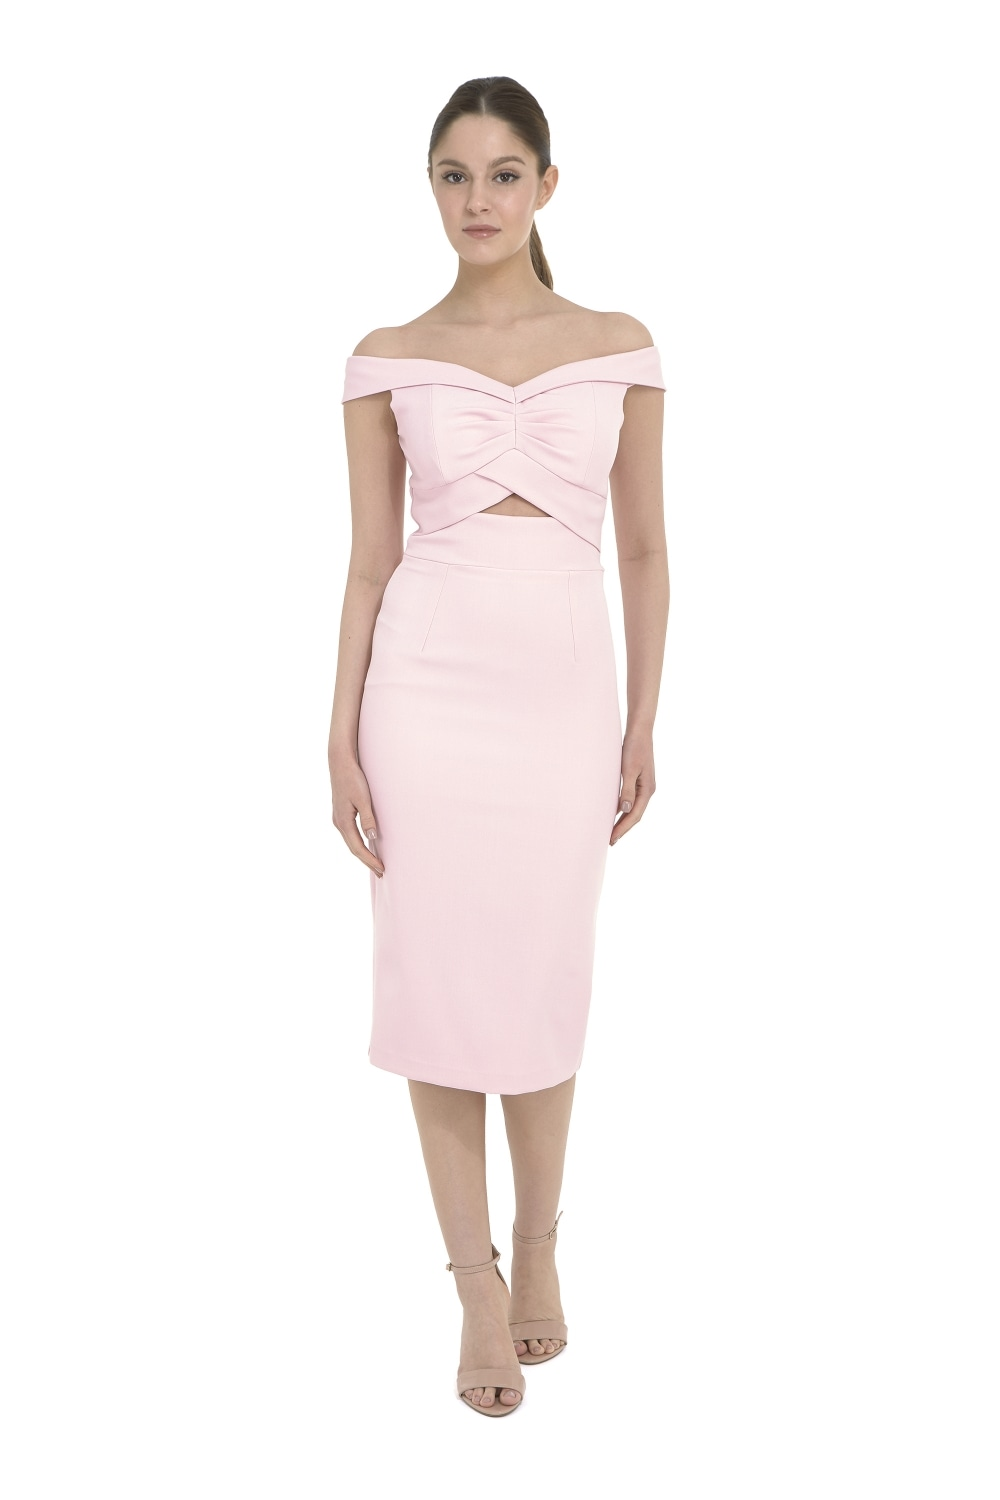 The Pretty Dress Company Kai Pale Pink Luxe Crepe Pencil Dress ...